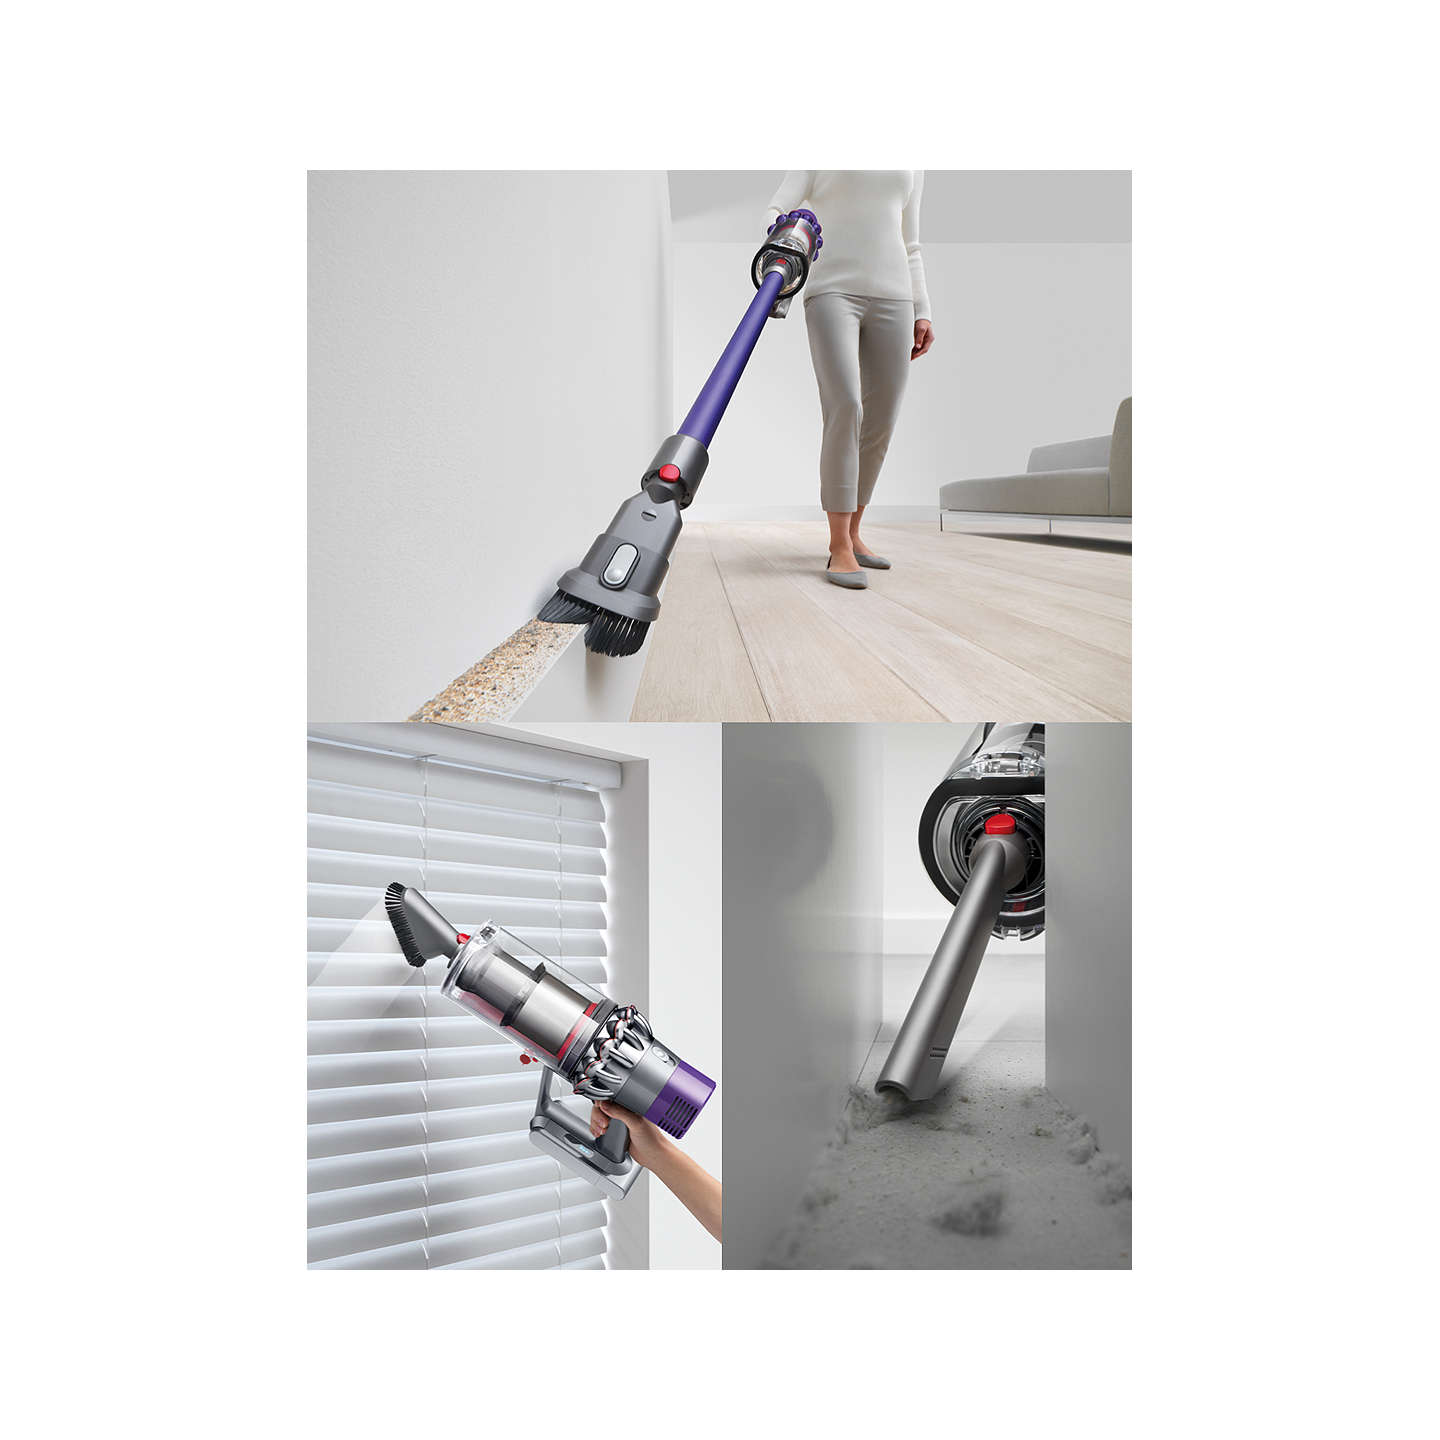 dyson cyclone v10 animal cordless vacuum cleaner purple at john lewis. Black Bedroom Furniture Sets. Home Design Ideas